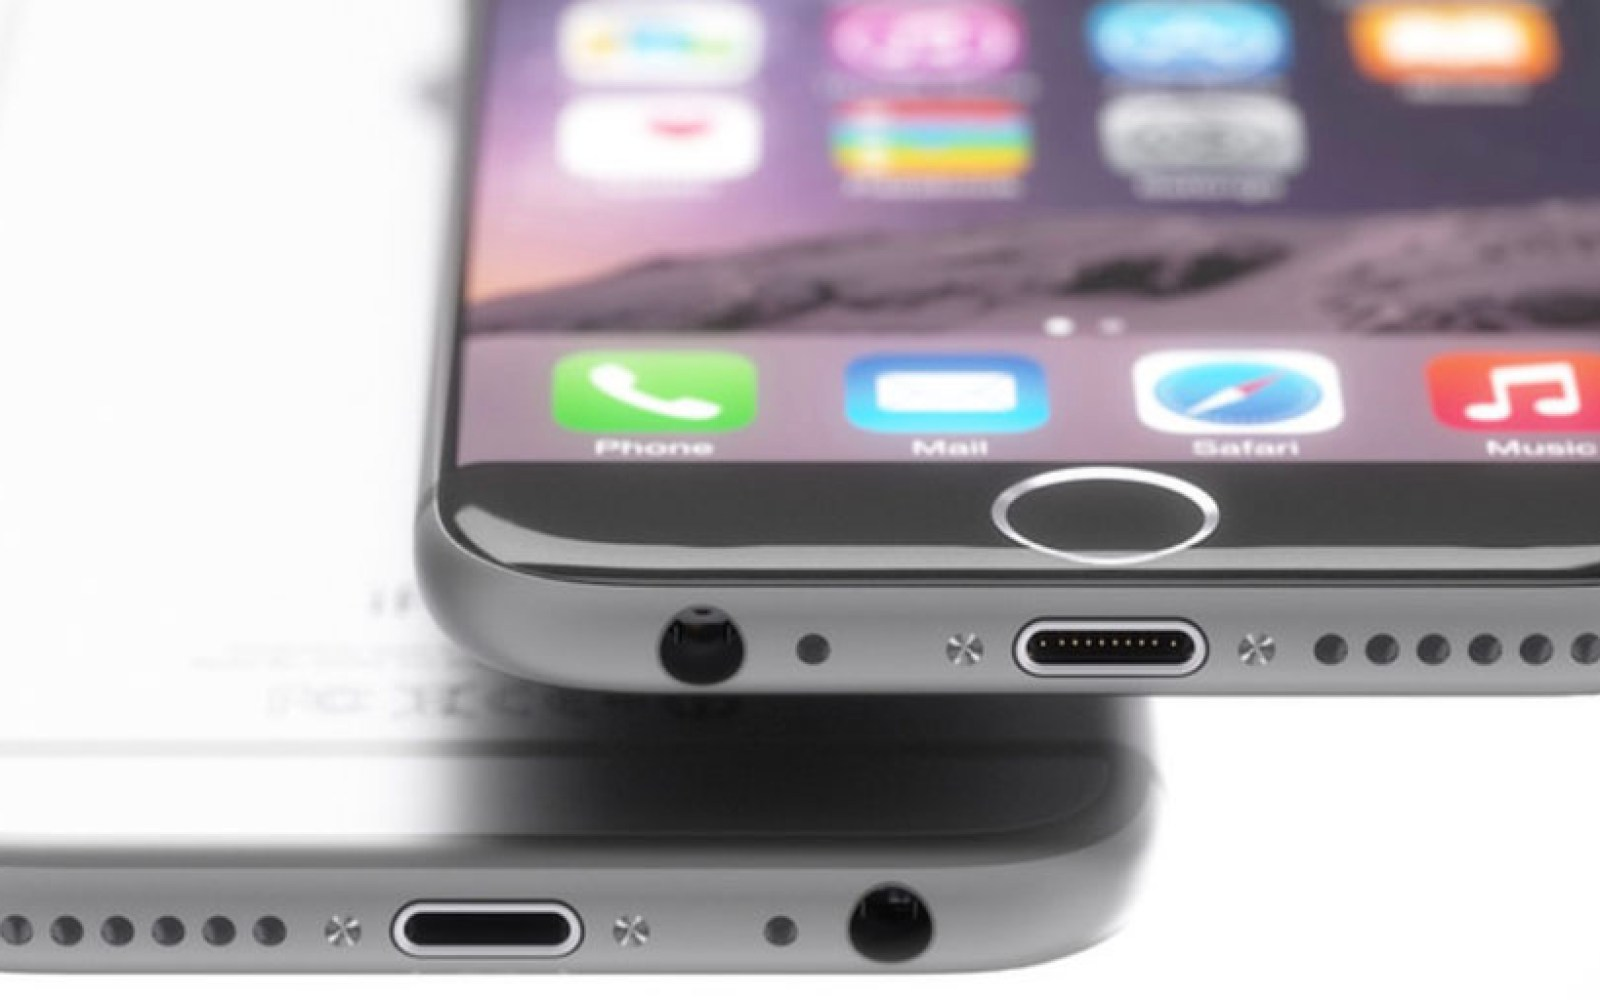 Report: Apple plans to nix 3.5mm port on iPhone 7, require Lightning for wired headphones